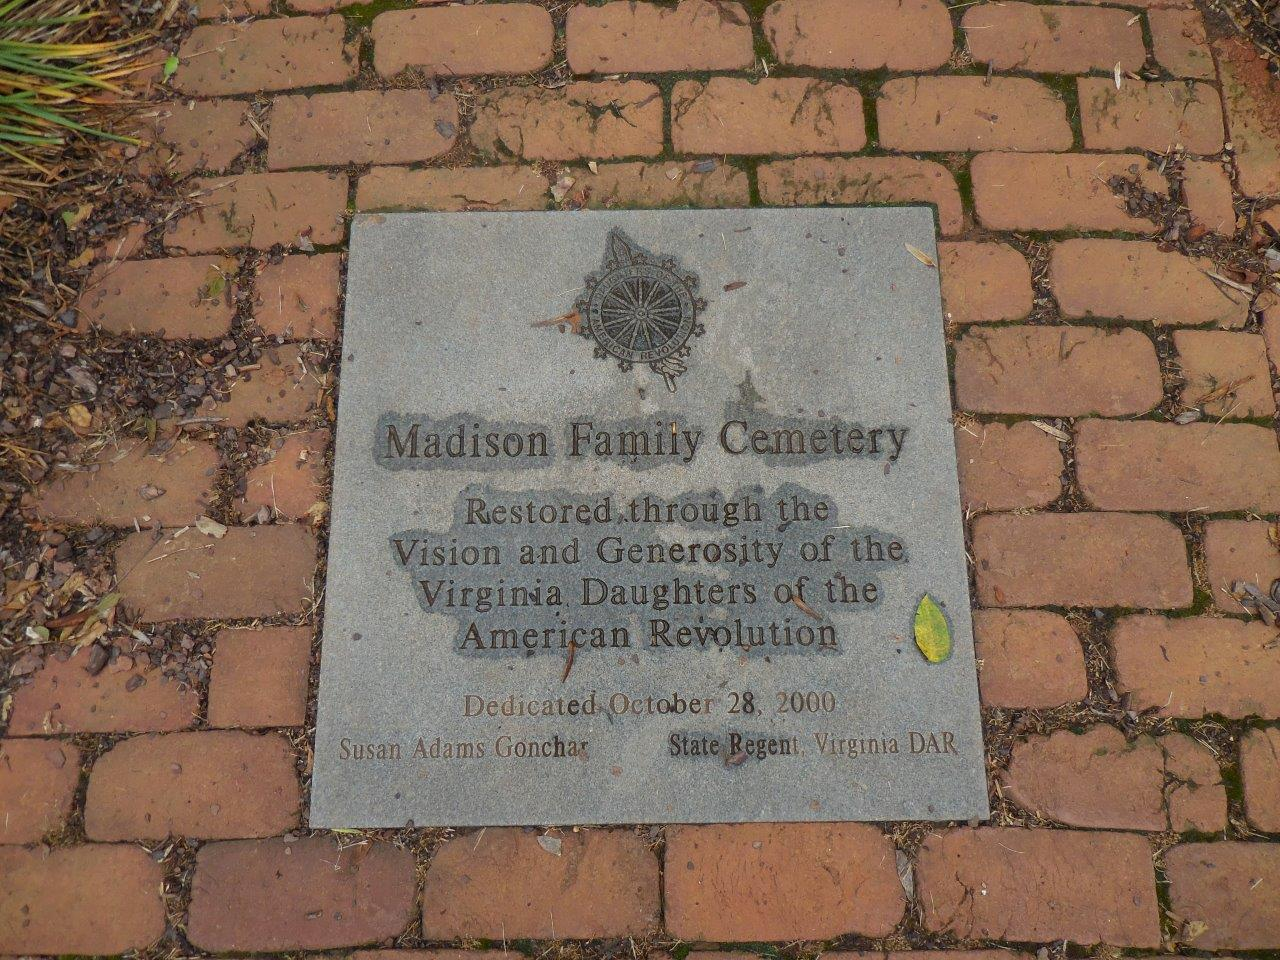 James Madison family cemetery marker